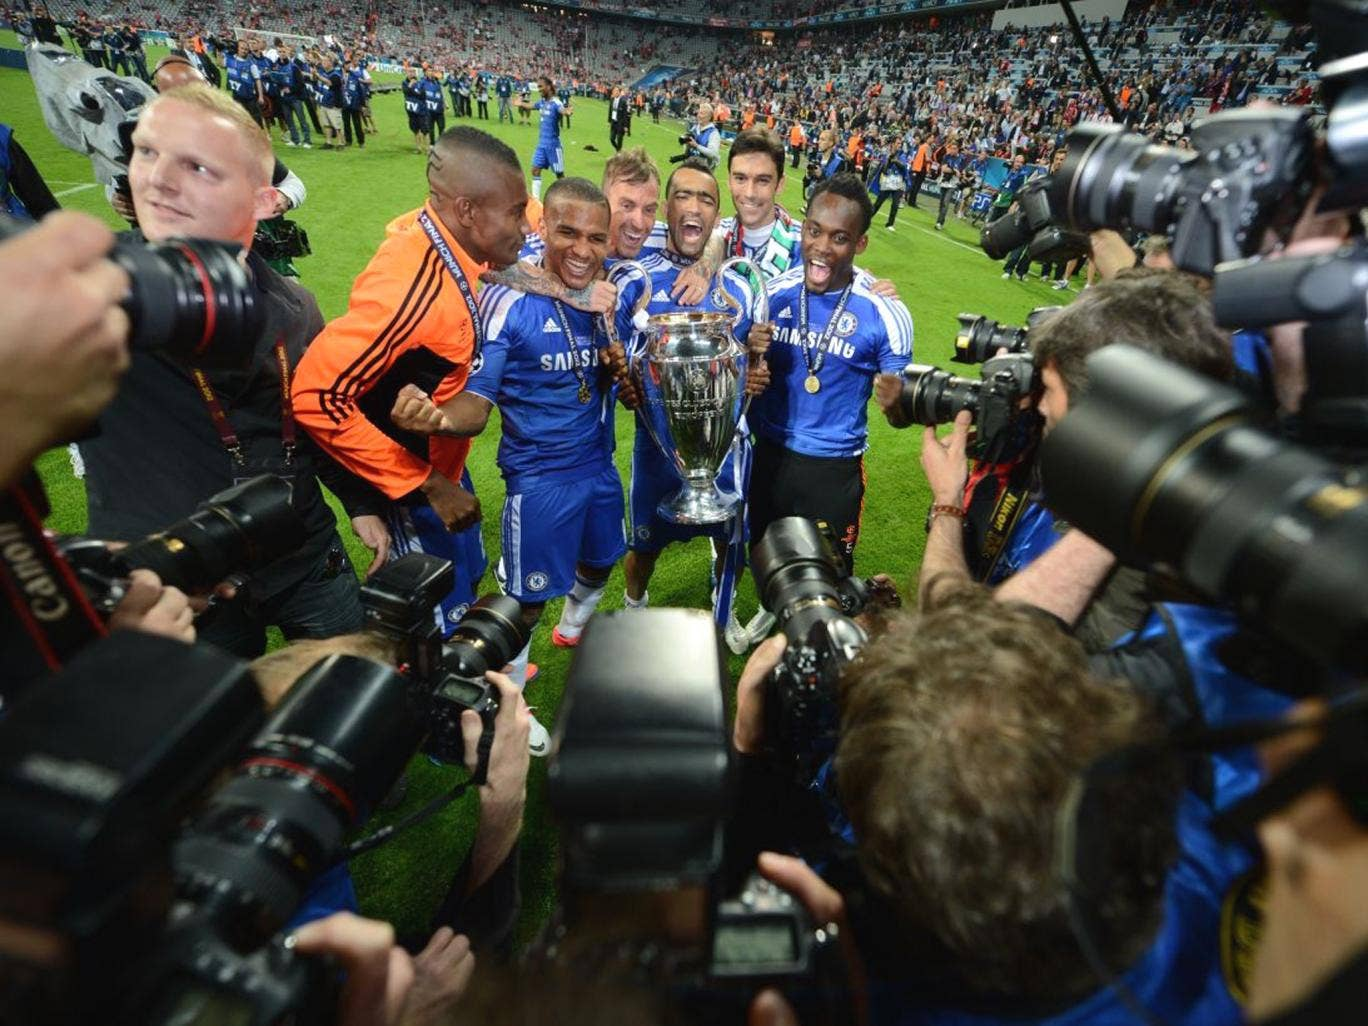 Chelsea won the Champions League last year. There is no suggestion anyone at the club is involved in the match-fixing investigation